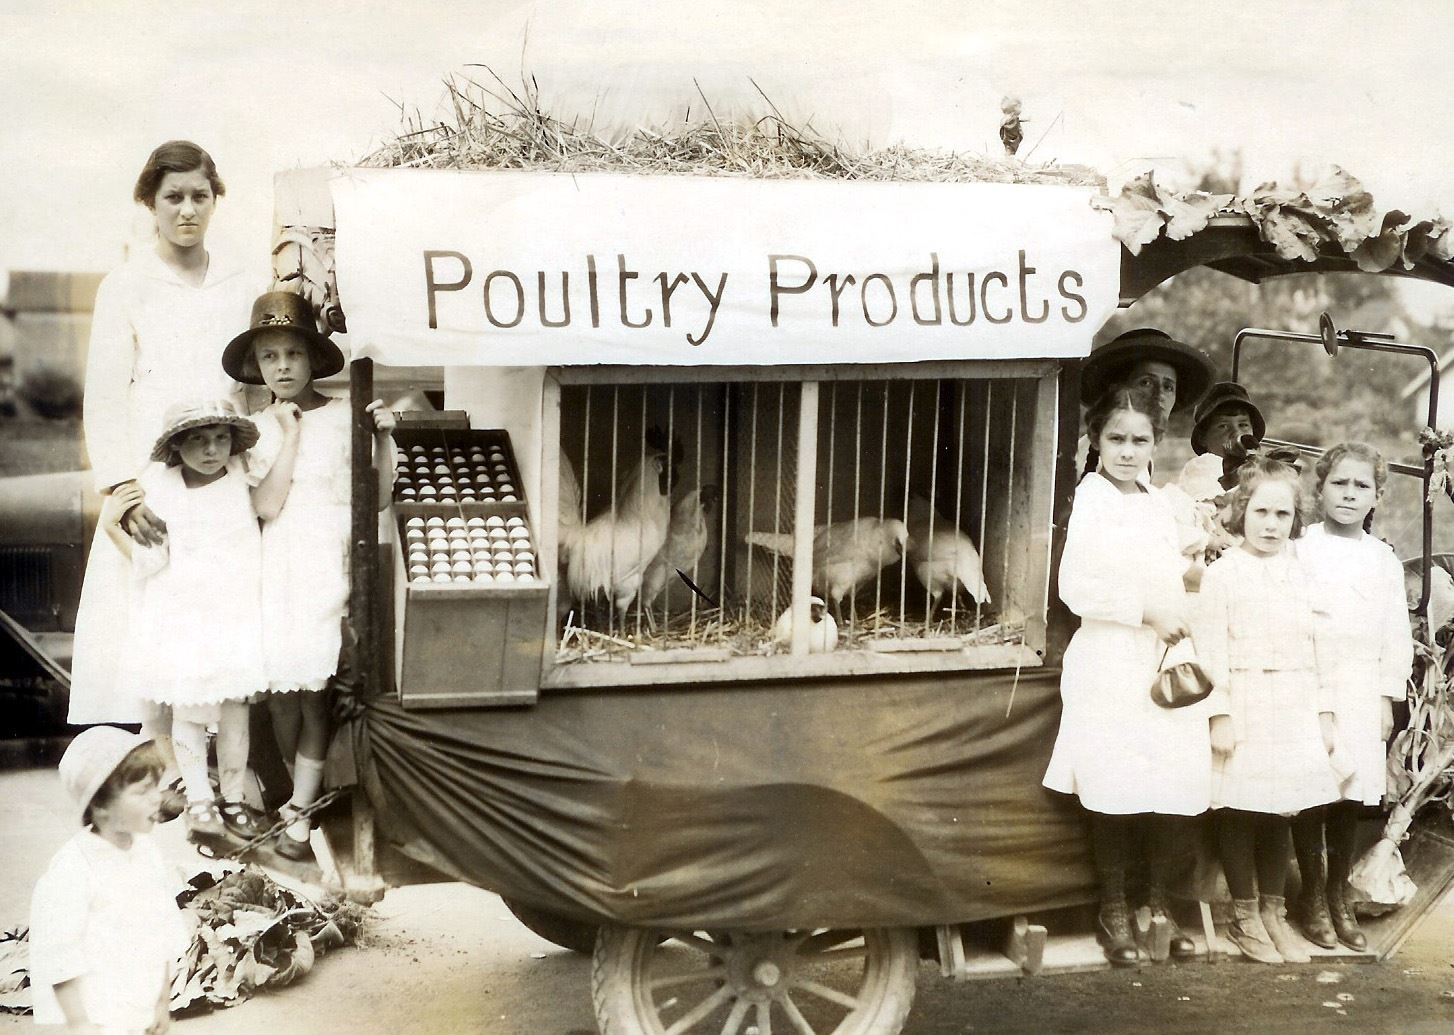 Historic Photo of Poultry Products Stand